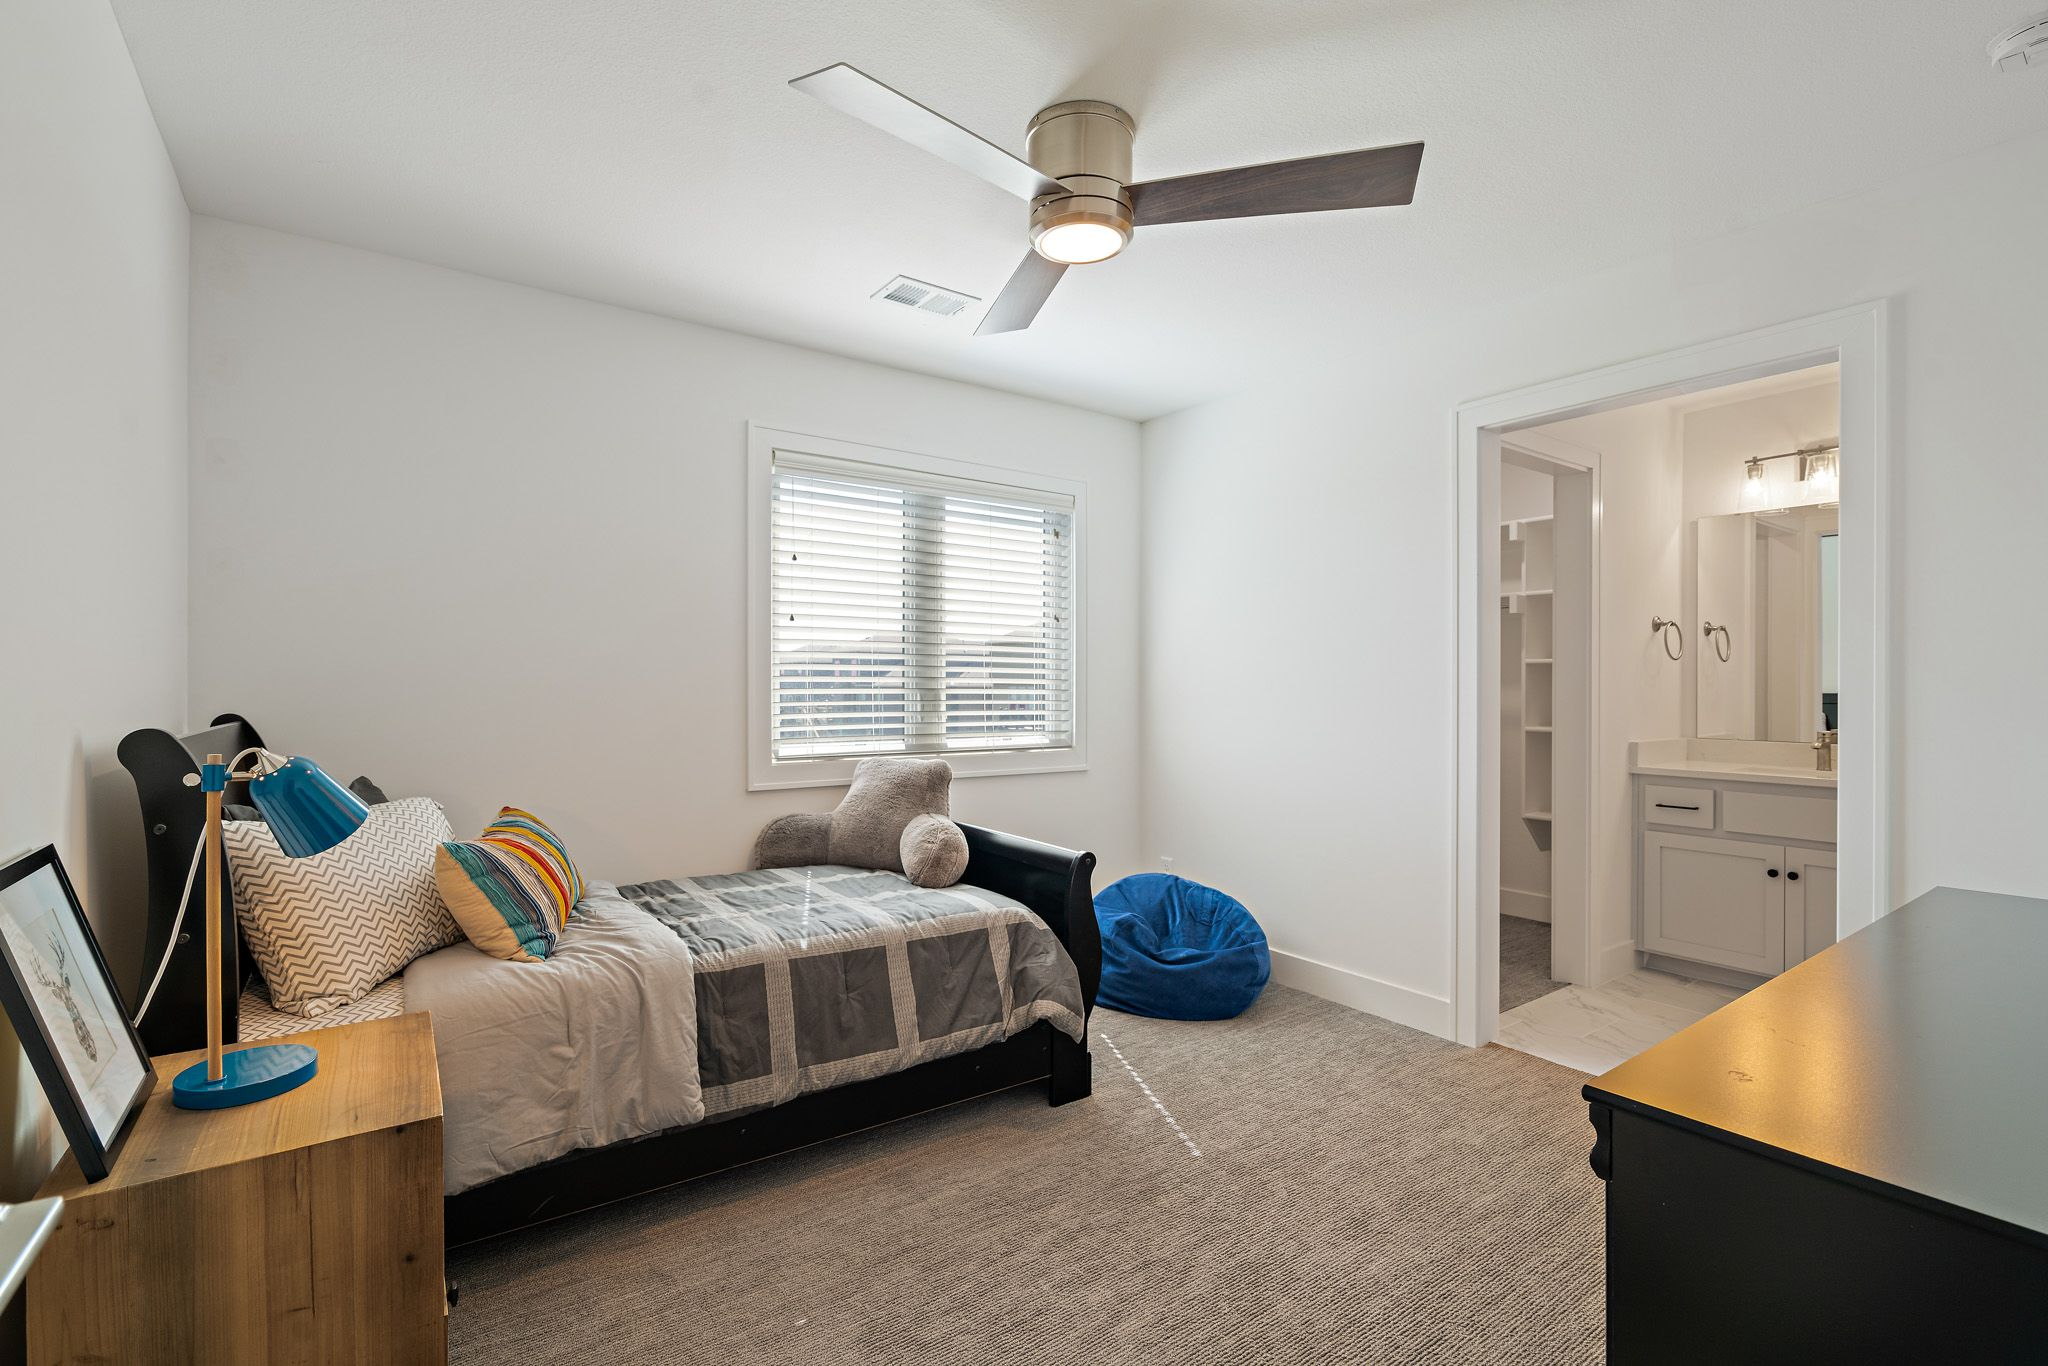 Bedroom featured in the Sydney By Summit Homes in Kansas City, MO